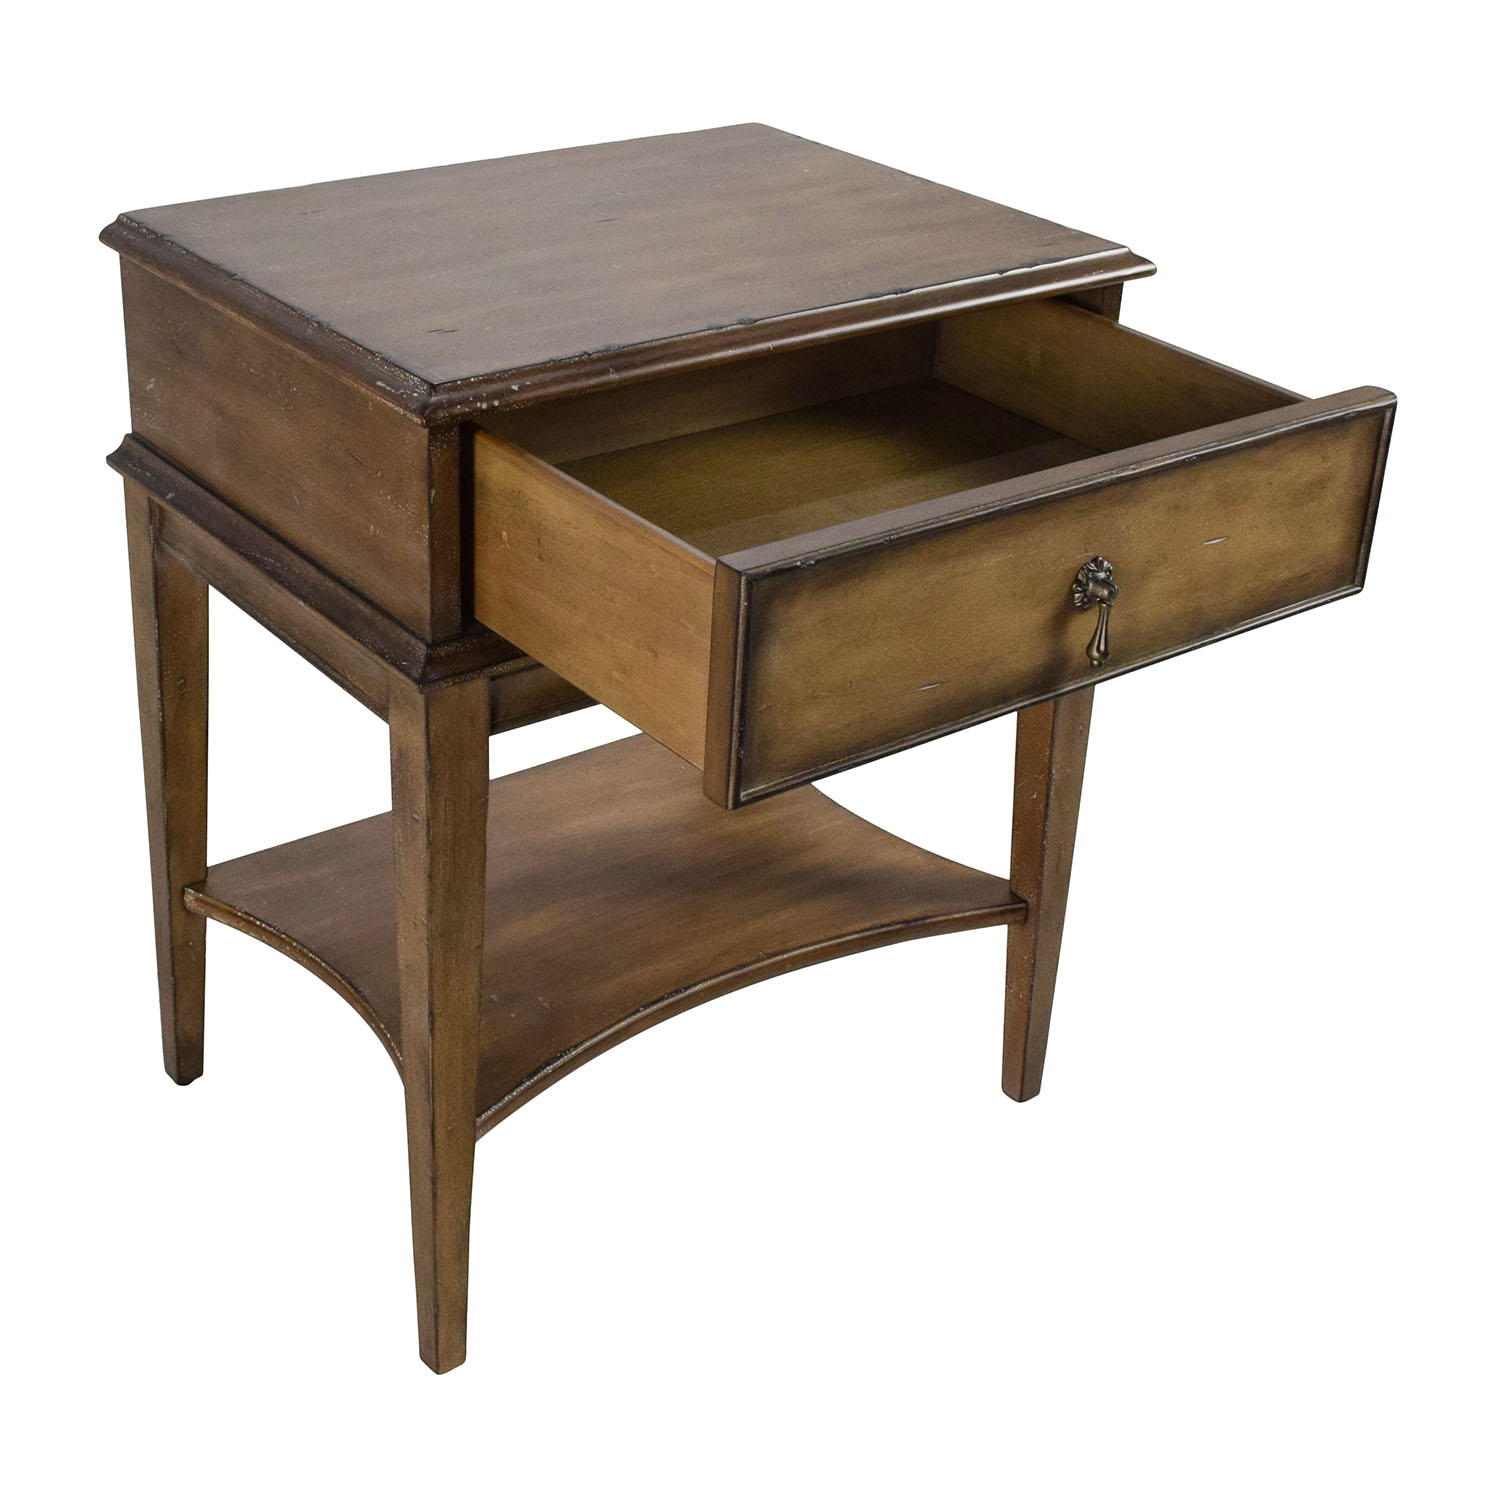 OFF Uttermost Uttermost Hanford End Table Tables